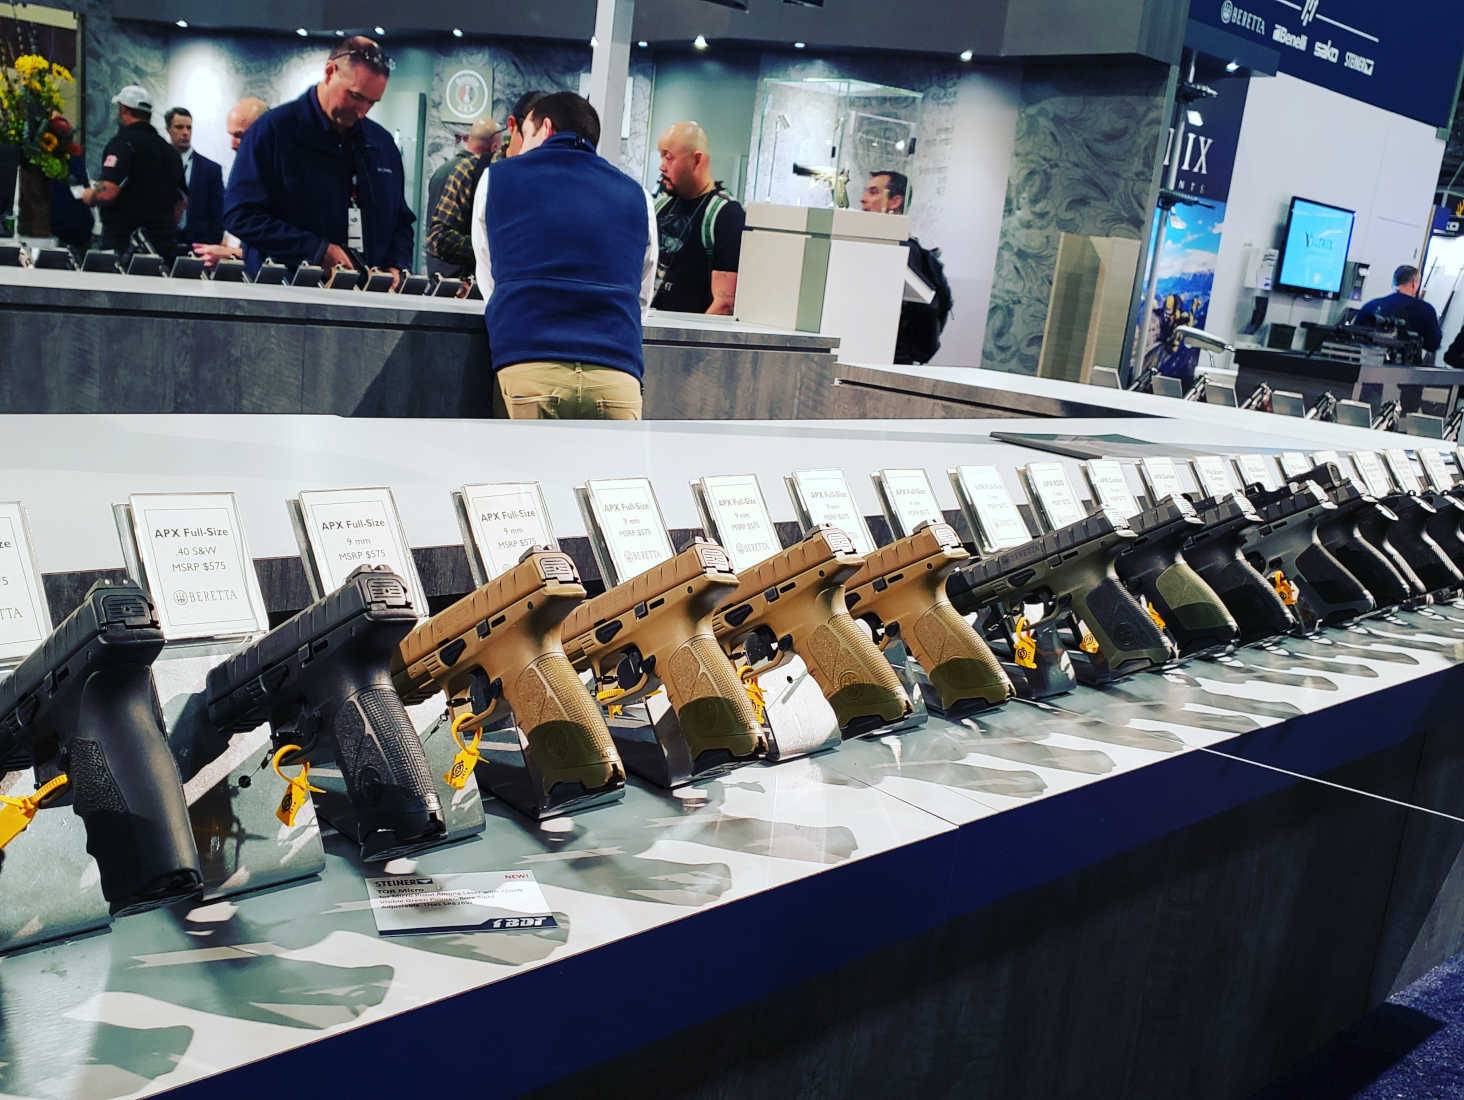 Why Thieves Who Stole Guns from SHOT Show Didn't Get Very Far